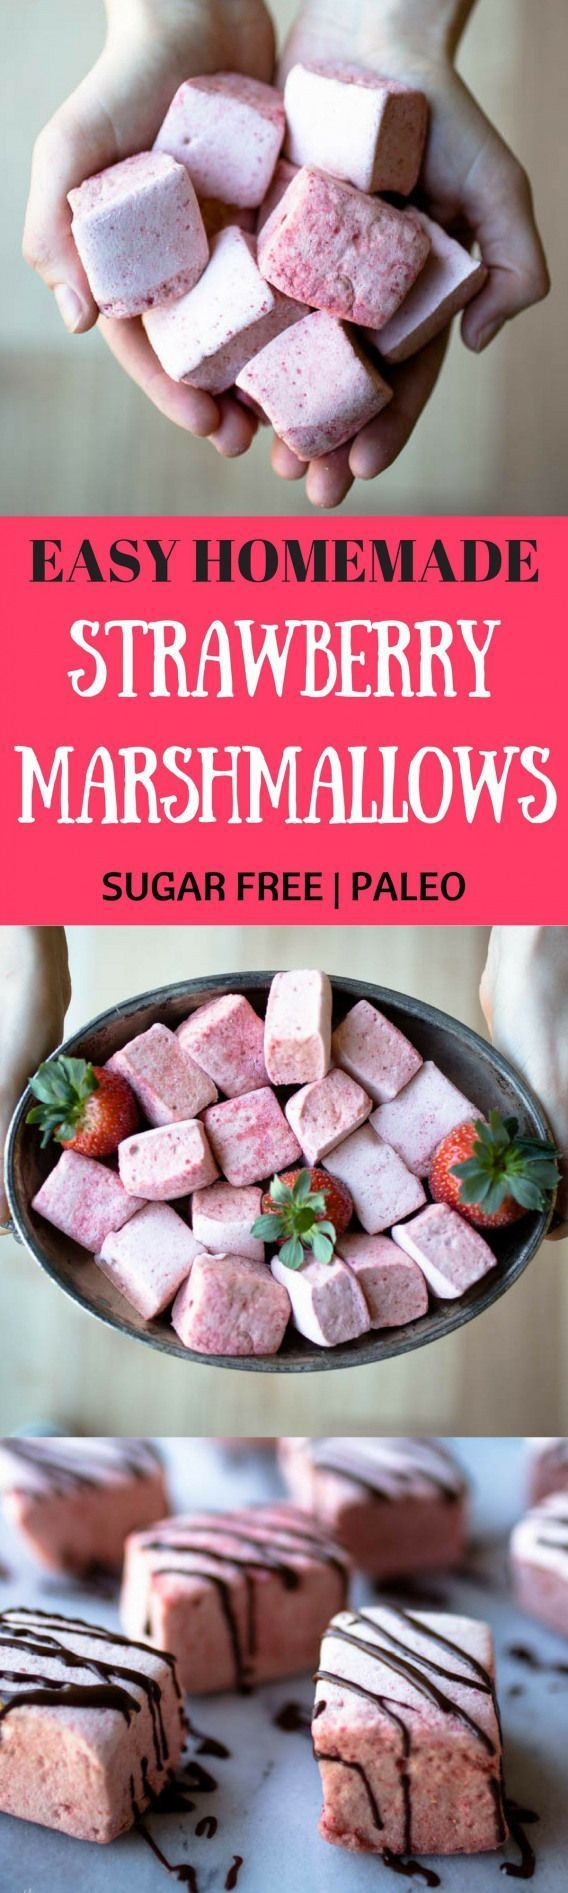 Easy homemade paleo marshmallows! Best Sugar free healthy Marshmallows! Paleo strawberry marshmallows recipe. Easy Paleo gluten free dessert and snack recipe. Healthy paleo candy recipe. #paleodessert #healthymarshmallows Easy homemade paleo marshmallows! Best Sugar free healthy Marshmallows! Paleo strawberry marshmallows recipe. Easy Paleo gluten free dessert and snack recipe. Healthy paleo candy recipe. #paleodessert #healthymarshmallows Easy homemade paleo marshmallows! Best Sugar free health #healthymarshmallows